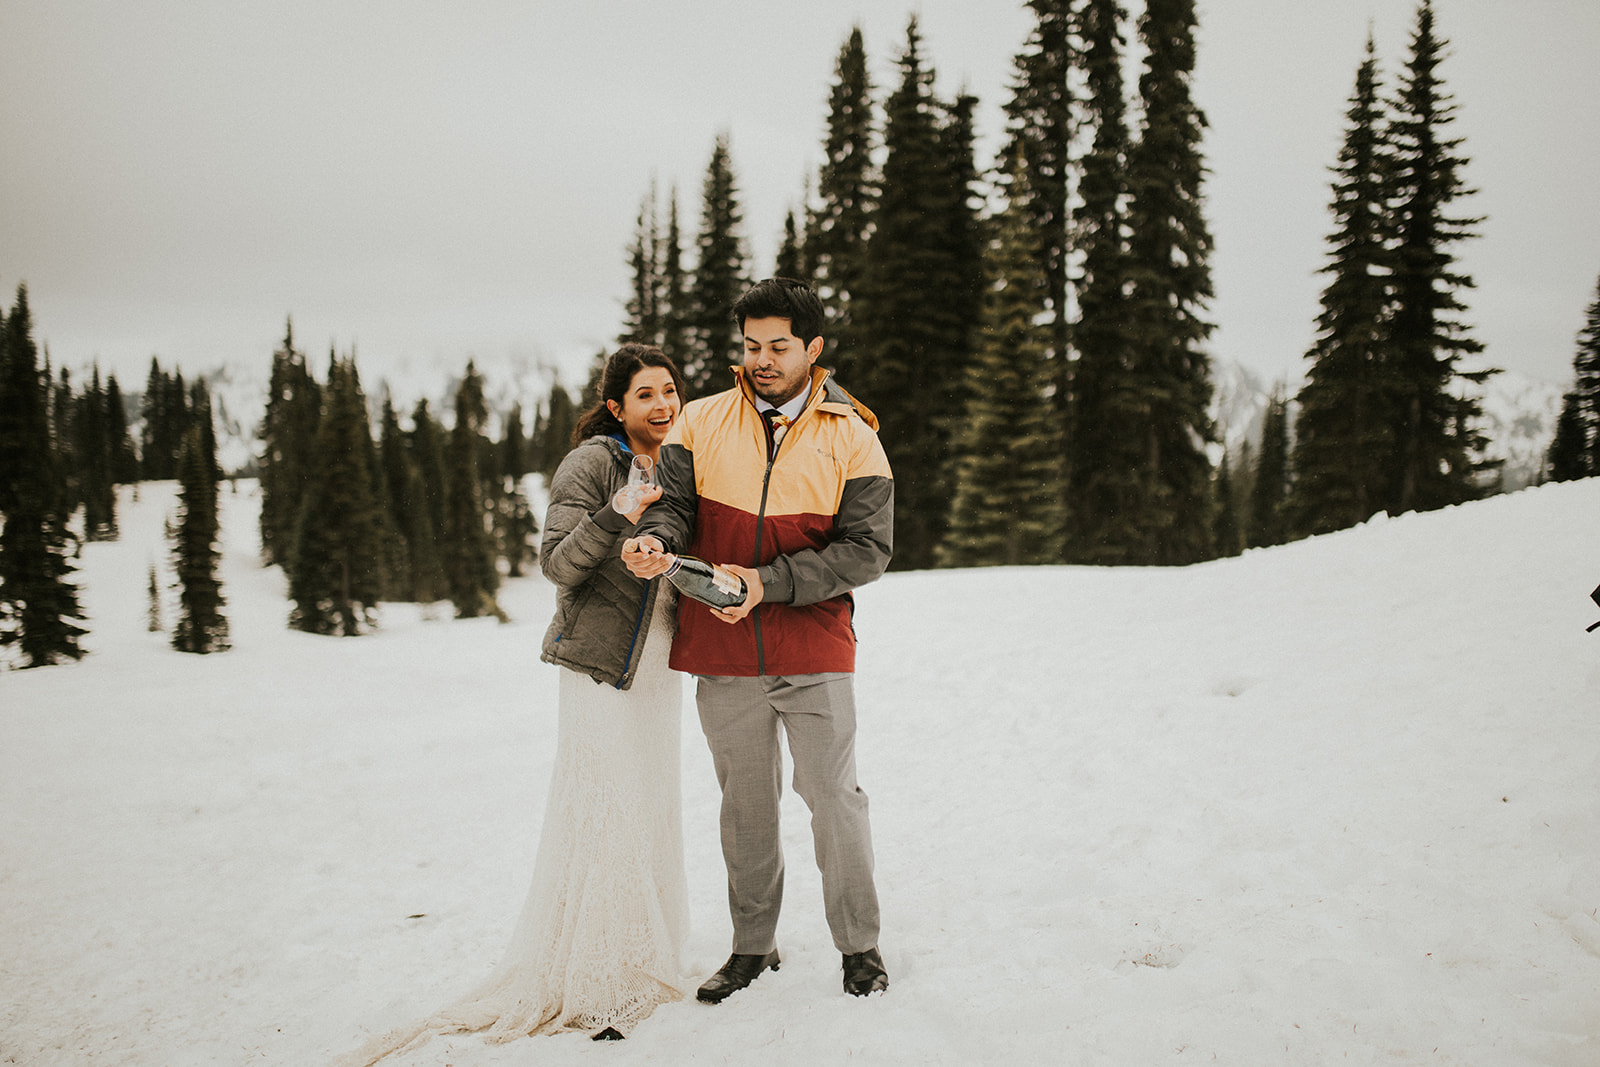 mt_rainier_elopement_mt_rainier_national_park_washington_winter_elopement_bree_and_michael-519.jpg